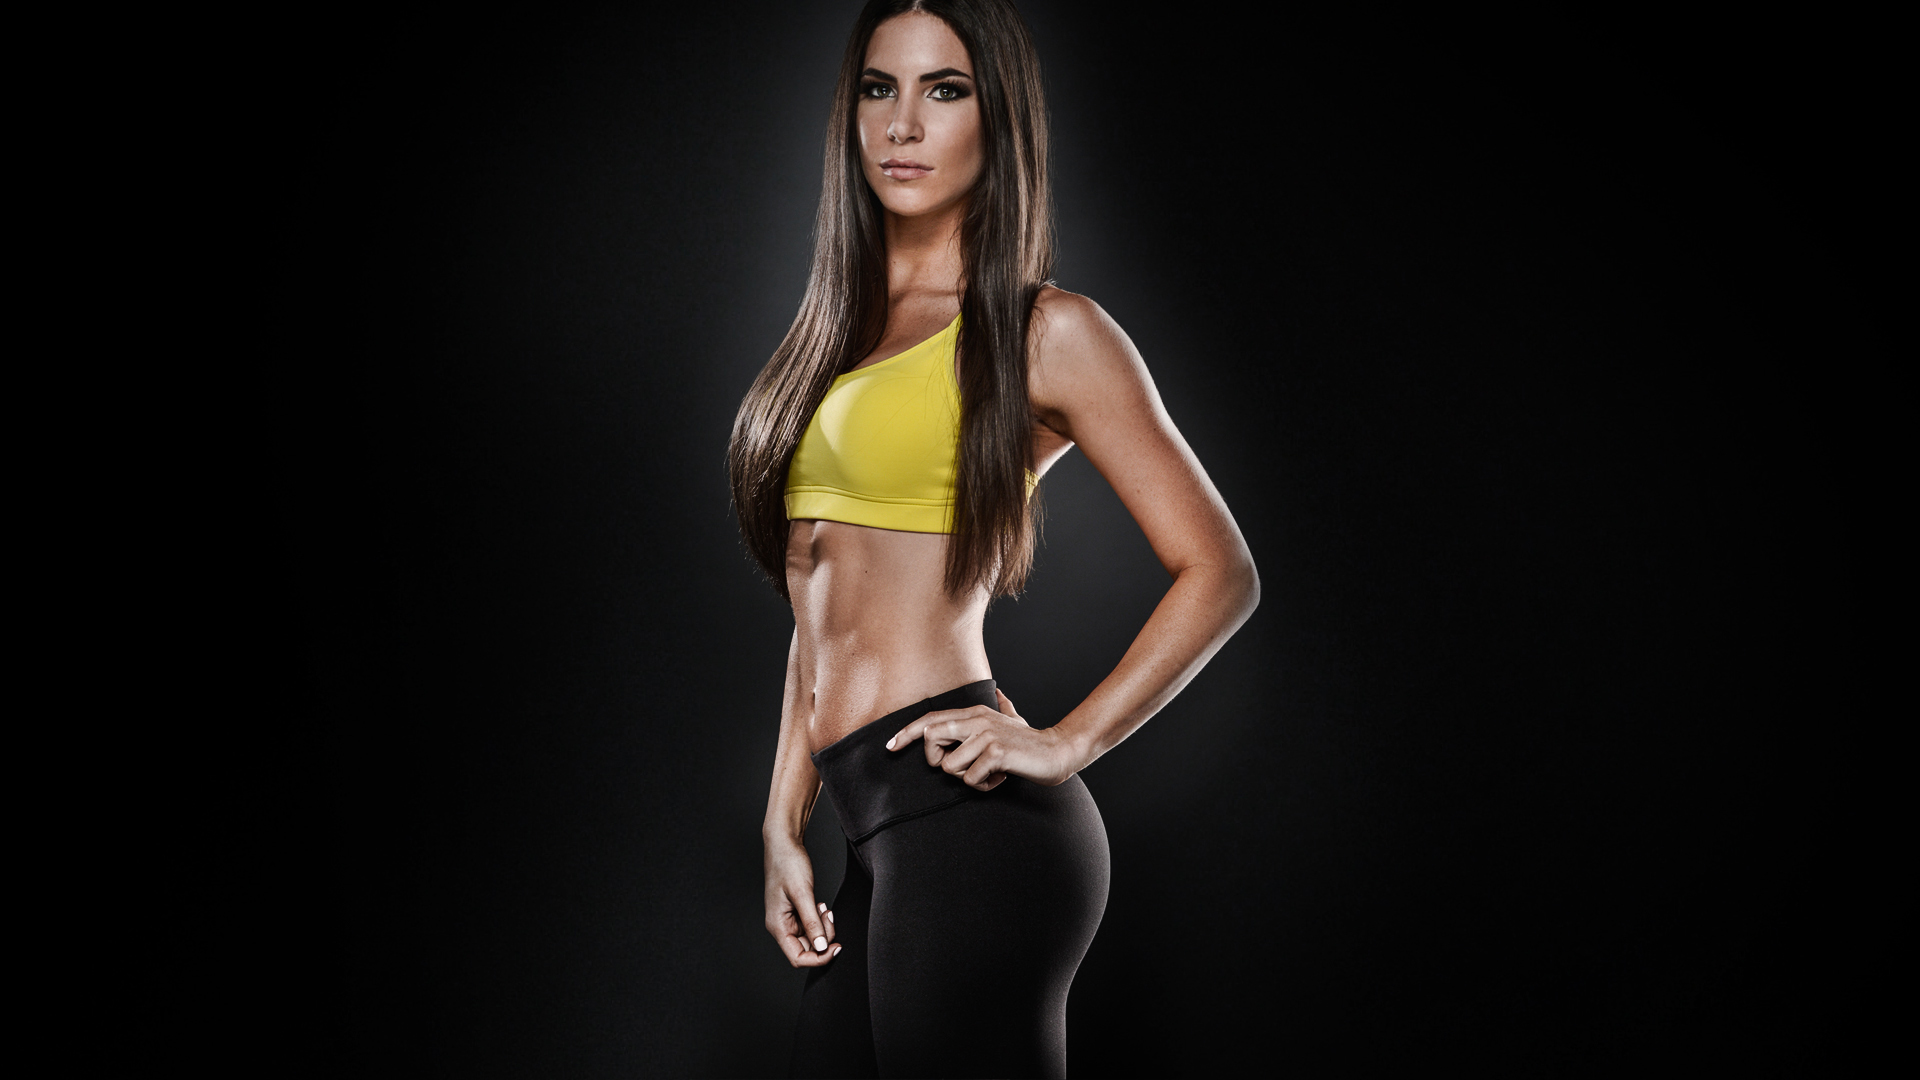 Jen Selter Wallpapers Images Photos Pictures Backgrounds